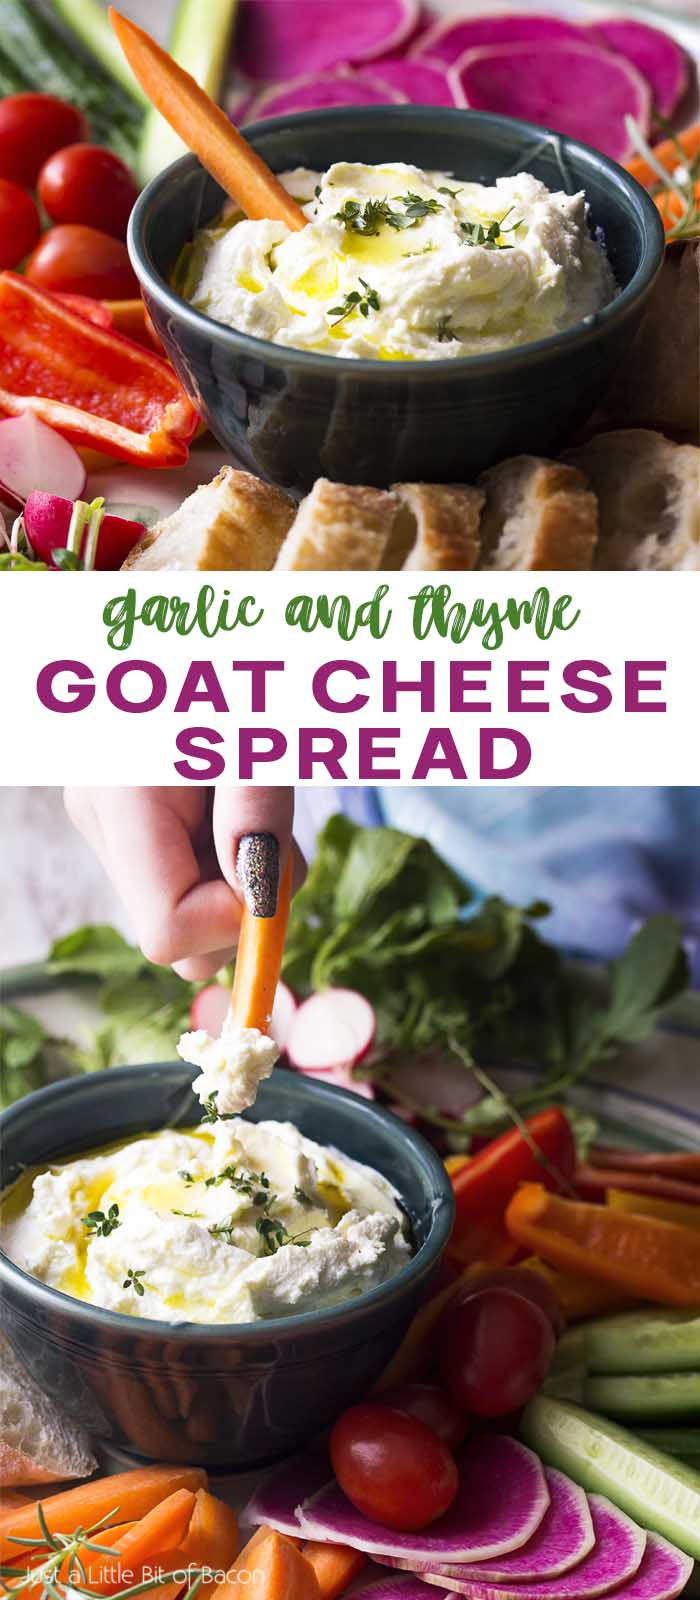 Recipe in a bowl being scooped up by a carrot with text overlay - Goat Cheese Spread.